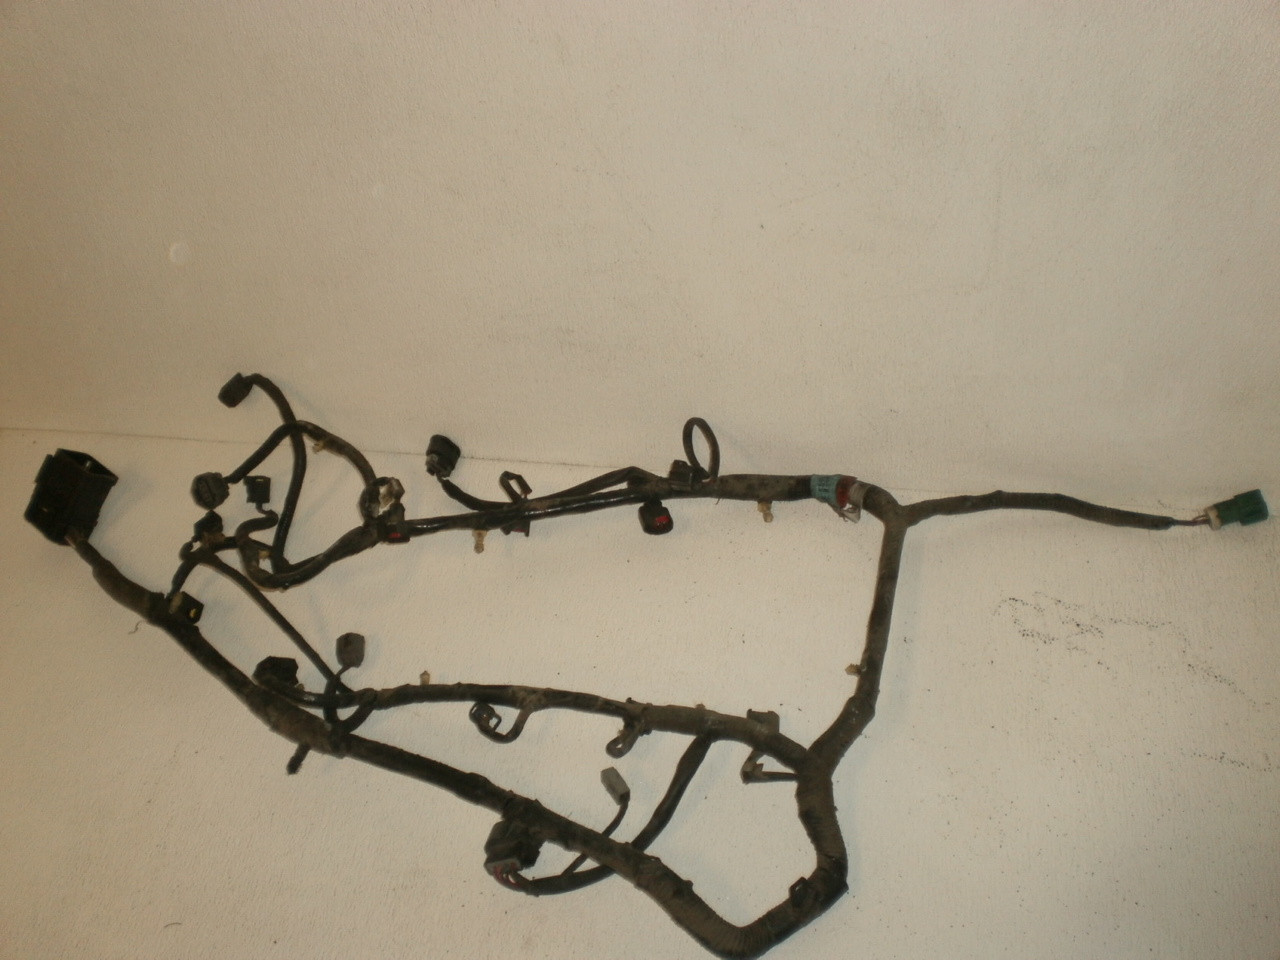 1994 1998 ford mustang 3 8 v6 water pump coolant heater bypass pipe line lx [ 1280 x 960 Pixel ]